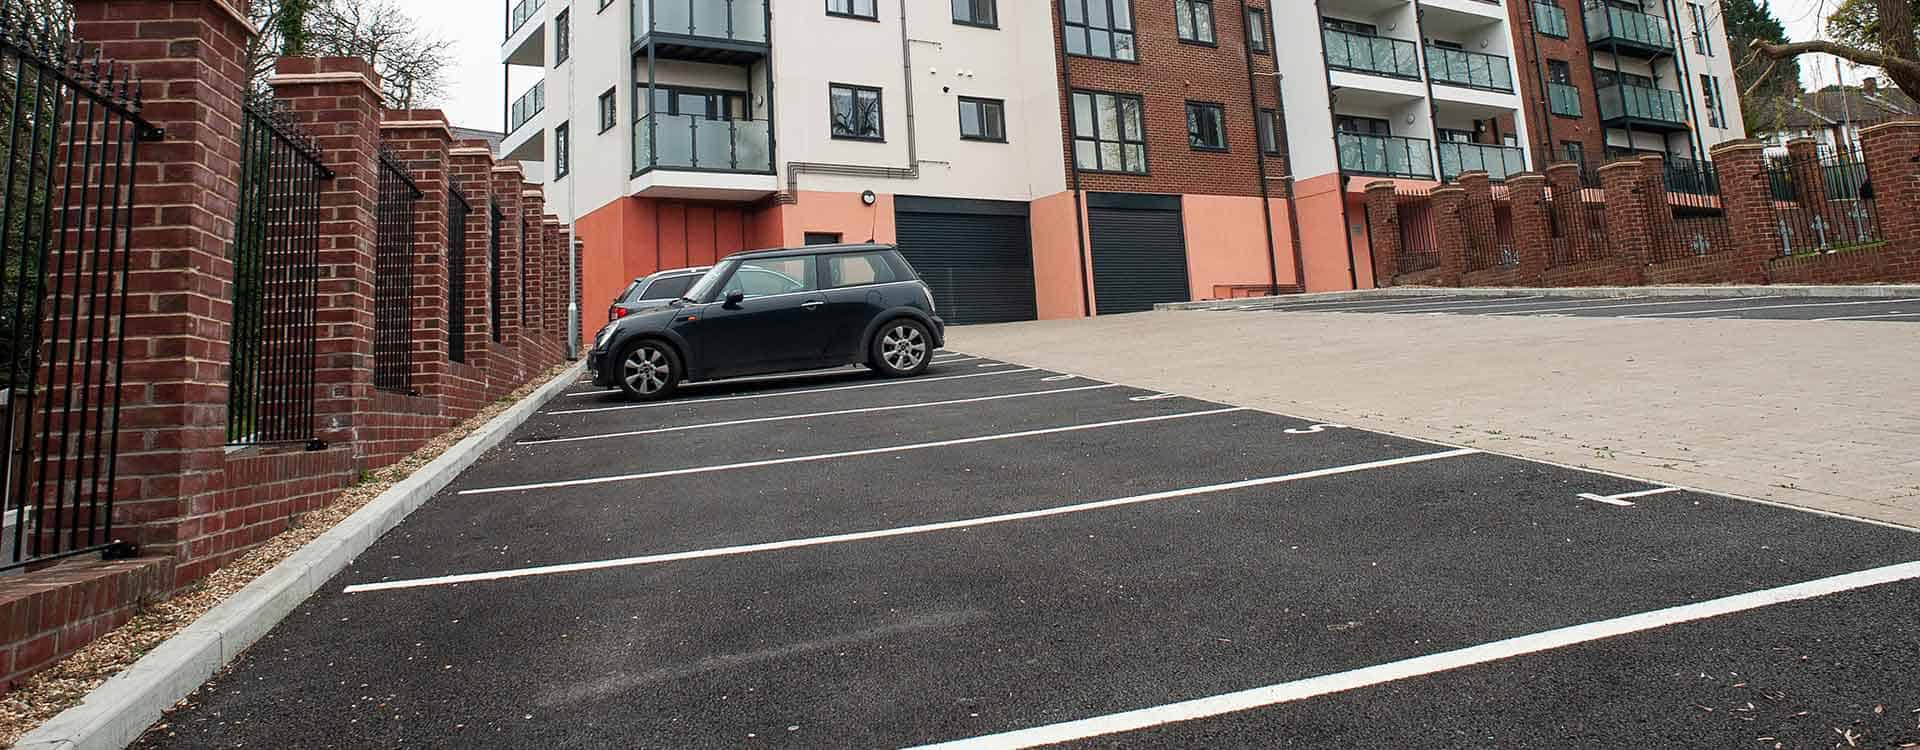 Car park with tarmced bays and block paved road